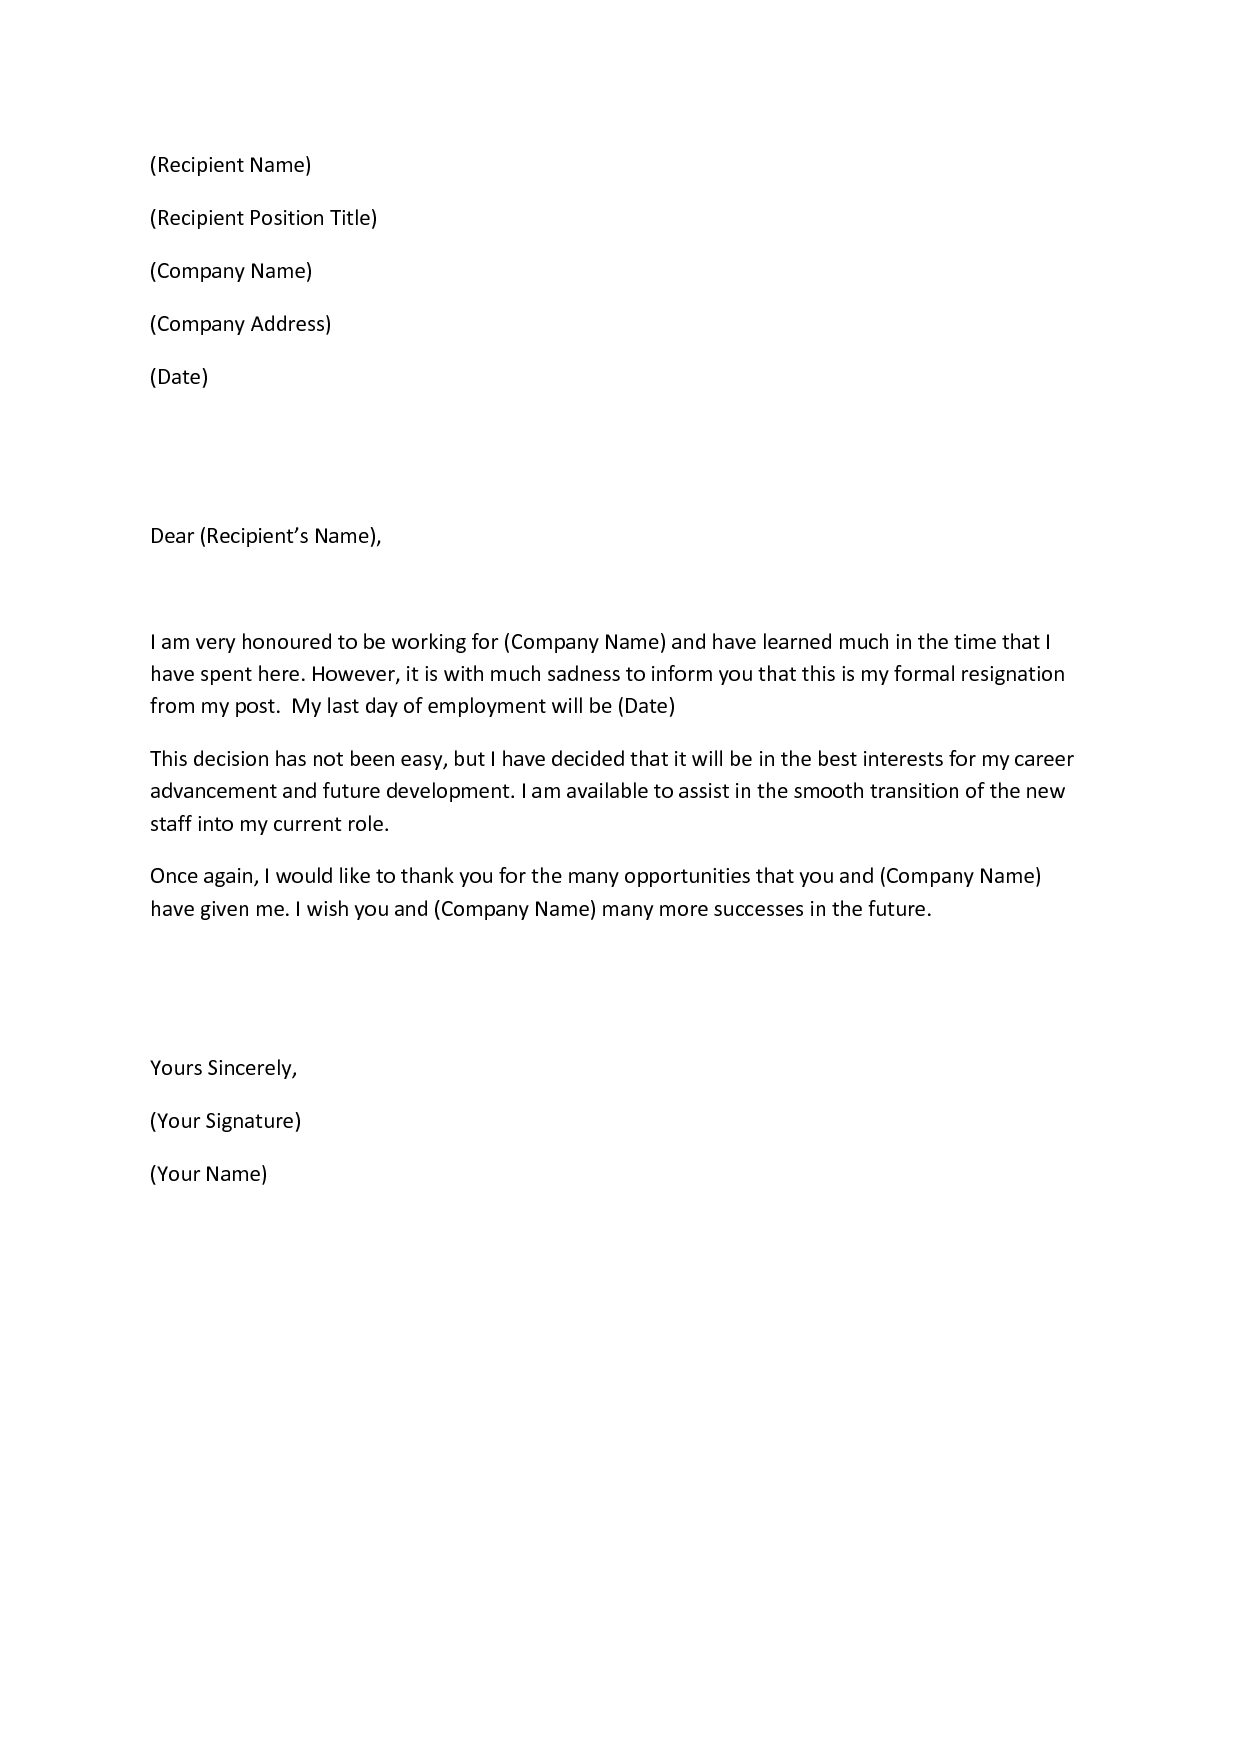 Letters Of Resignation Samples Image Result For Example Of Resignation Letter  Helpful  Pinterest .